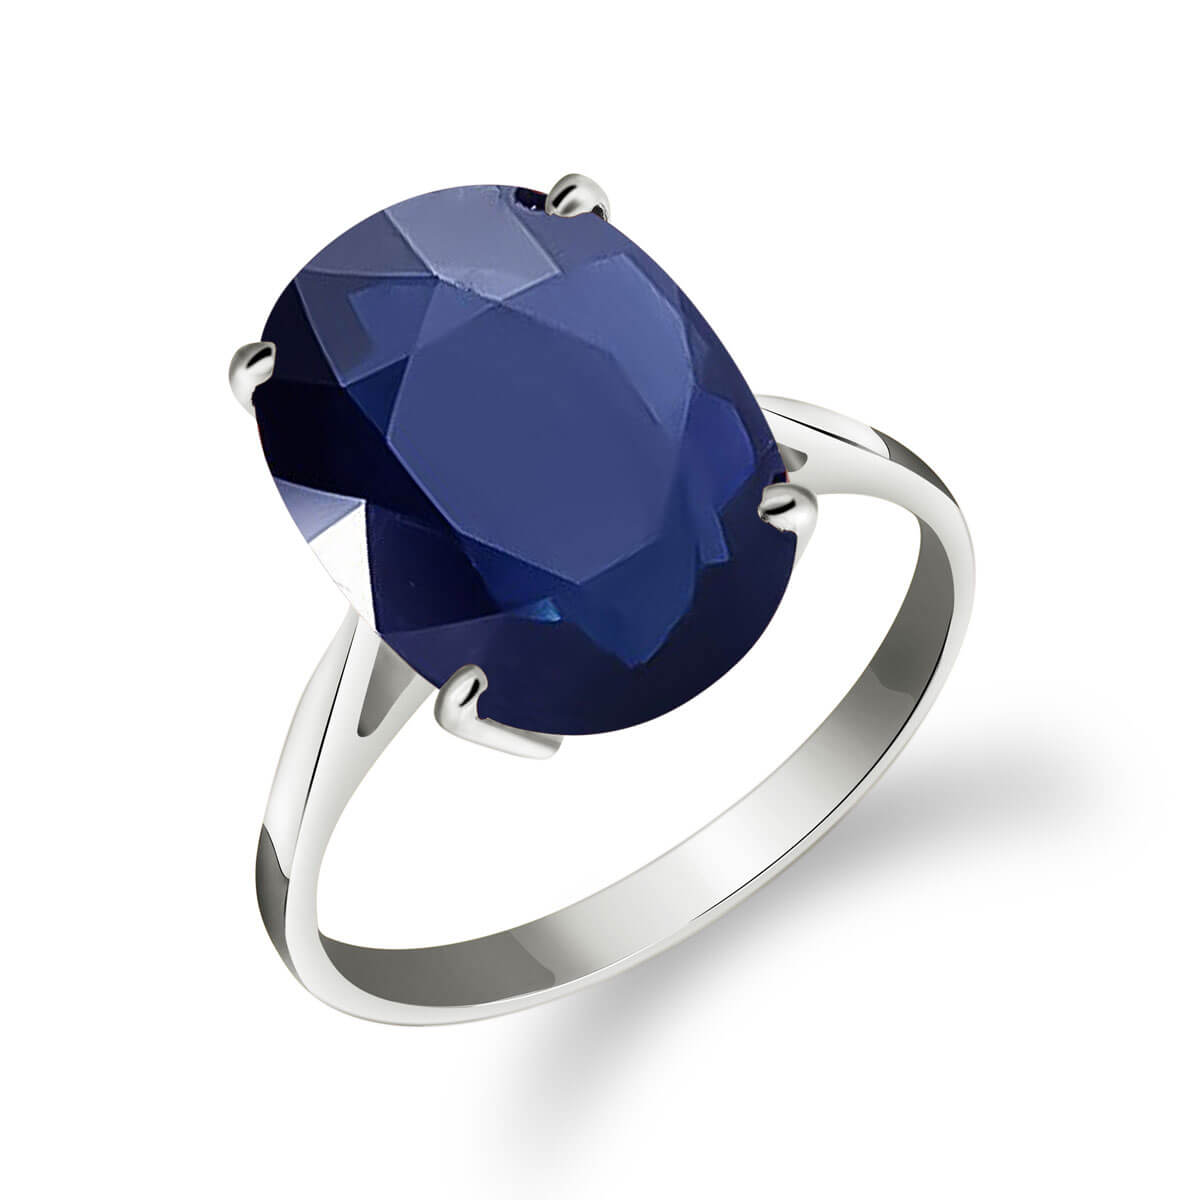 sapphire-valiant-ring-8-5-ct-in-white-gold-2555w